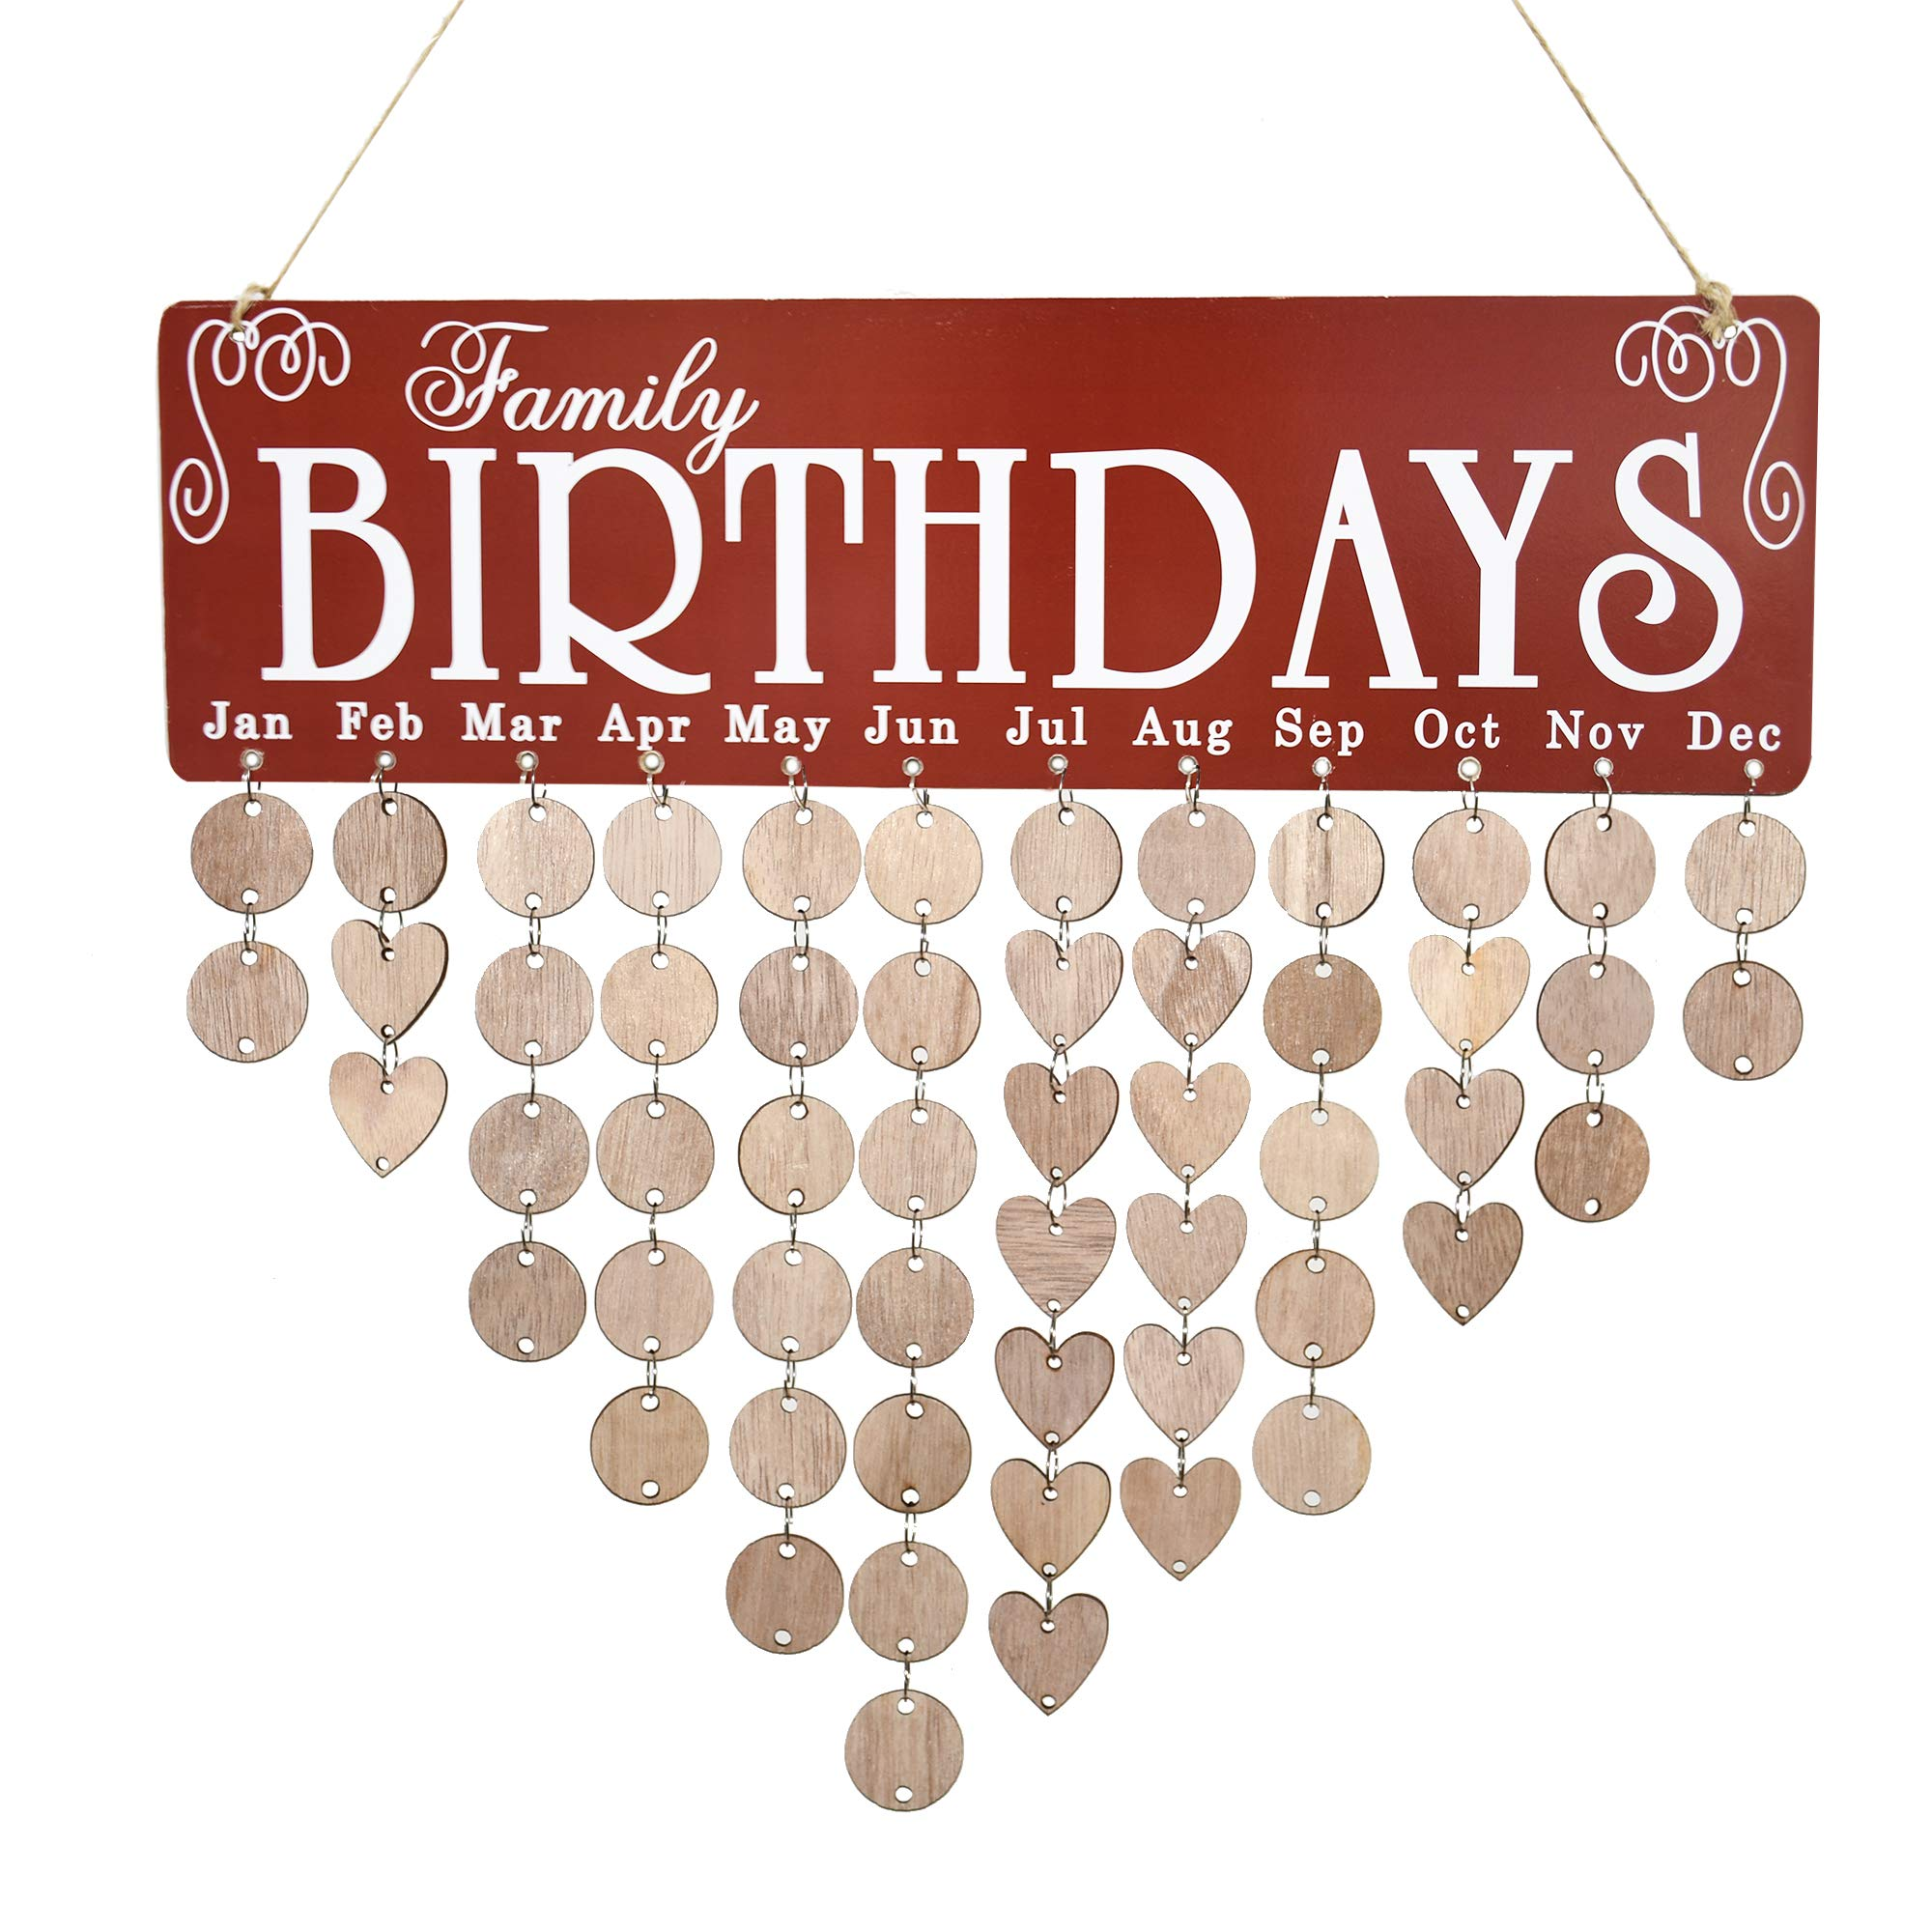 JHYQ-US Family Birthday Calendar Wooden Crafts Wall Hanging Plaque Board for Family Friends Birthday Reminder with 50 Pieces Wooden DIY Discs Hanging One by One by JHYQ-US